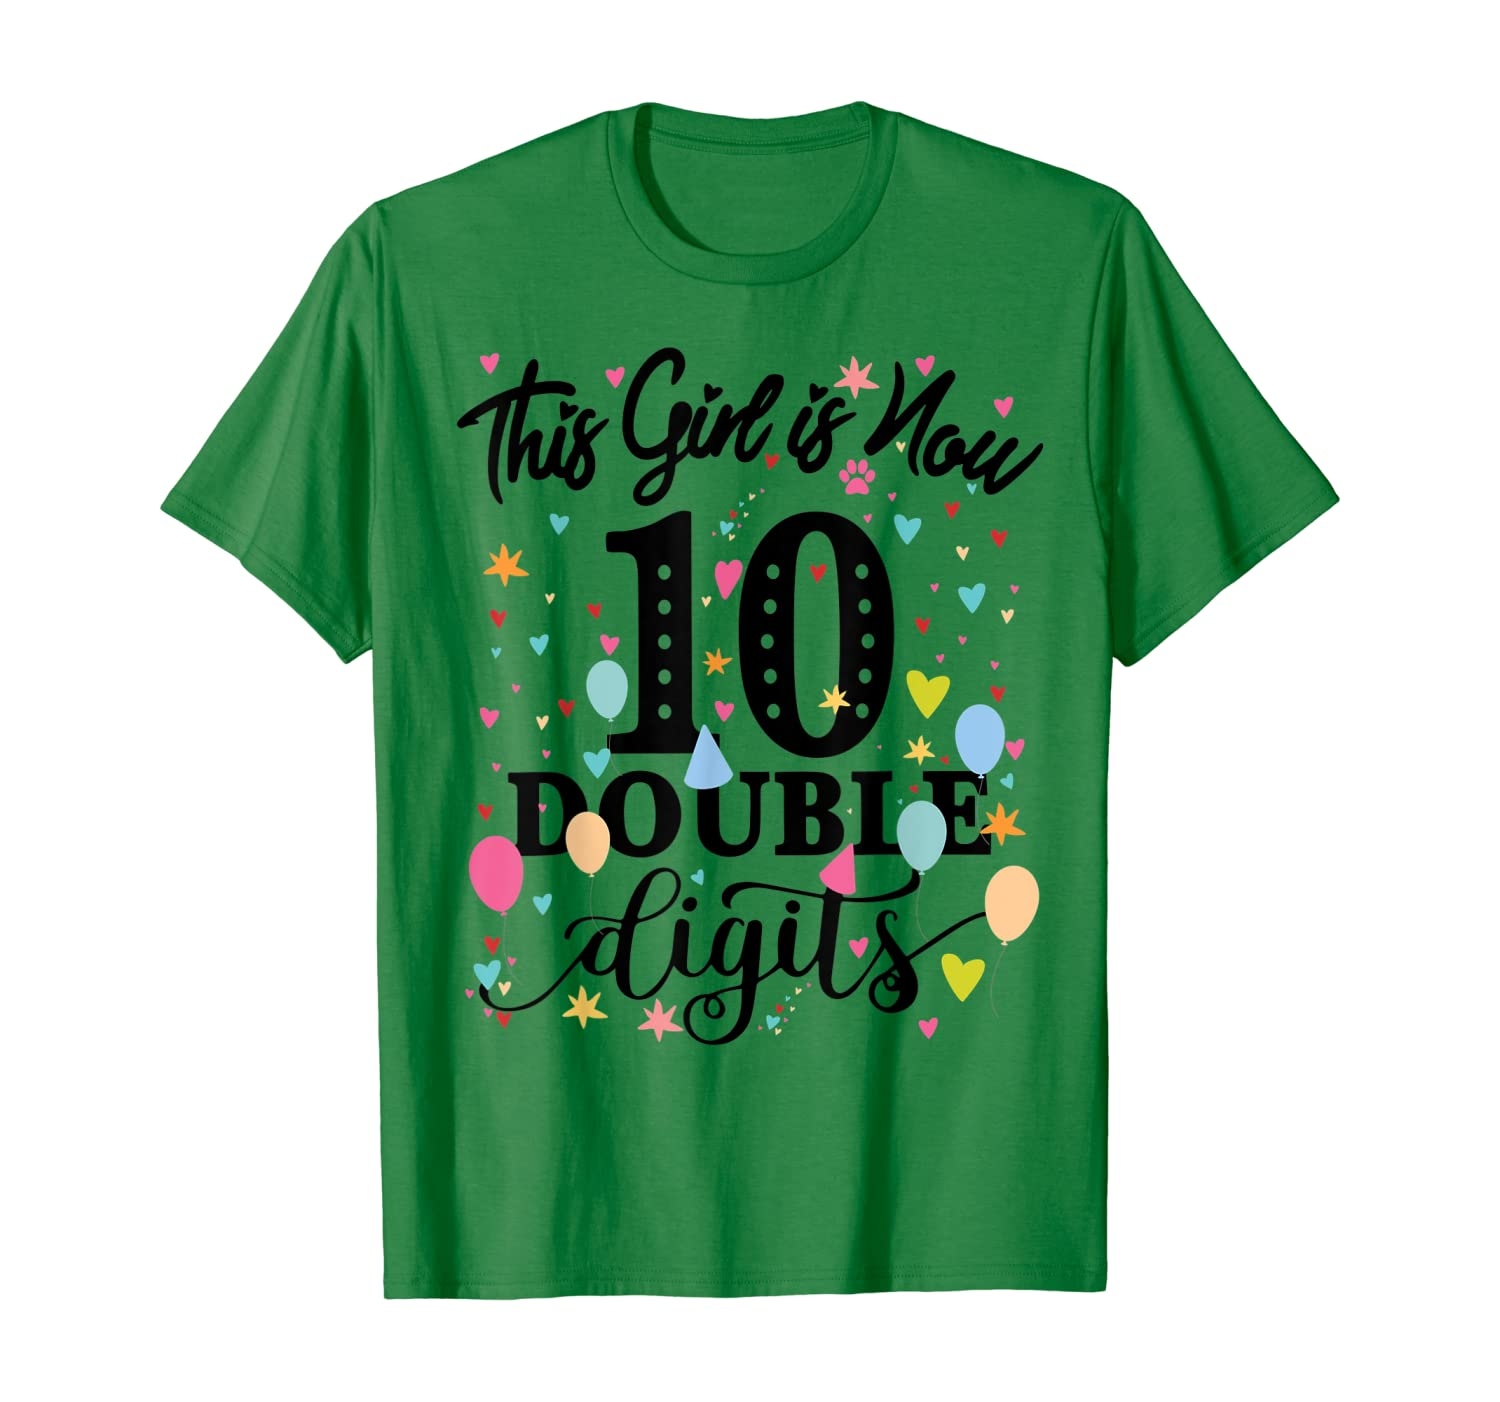 10th Birthday Gifts Shirt This Girl Is Now 10 Double Digits T-Shirt